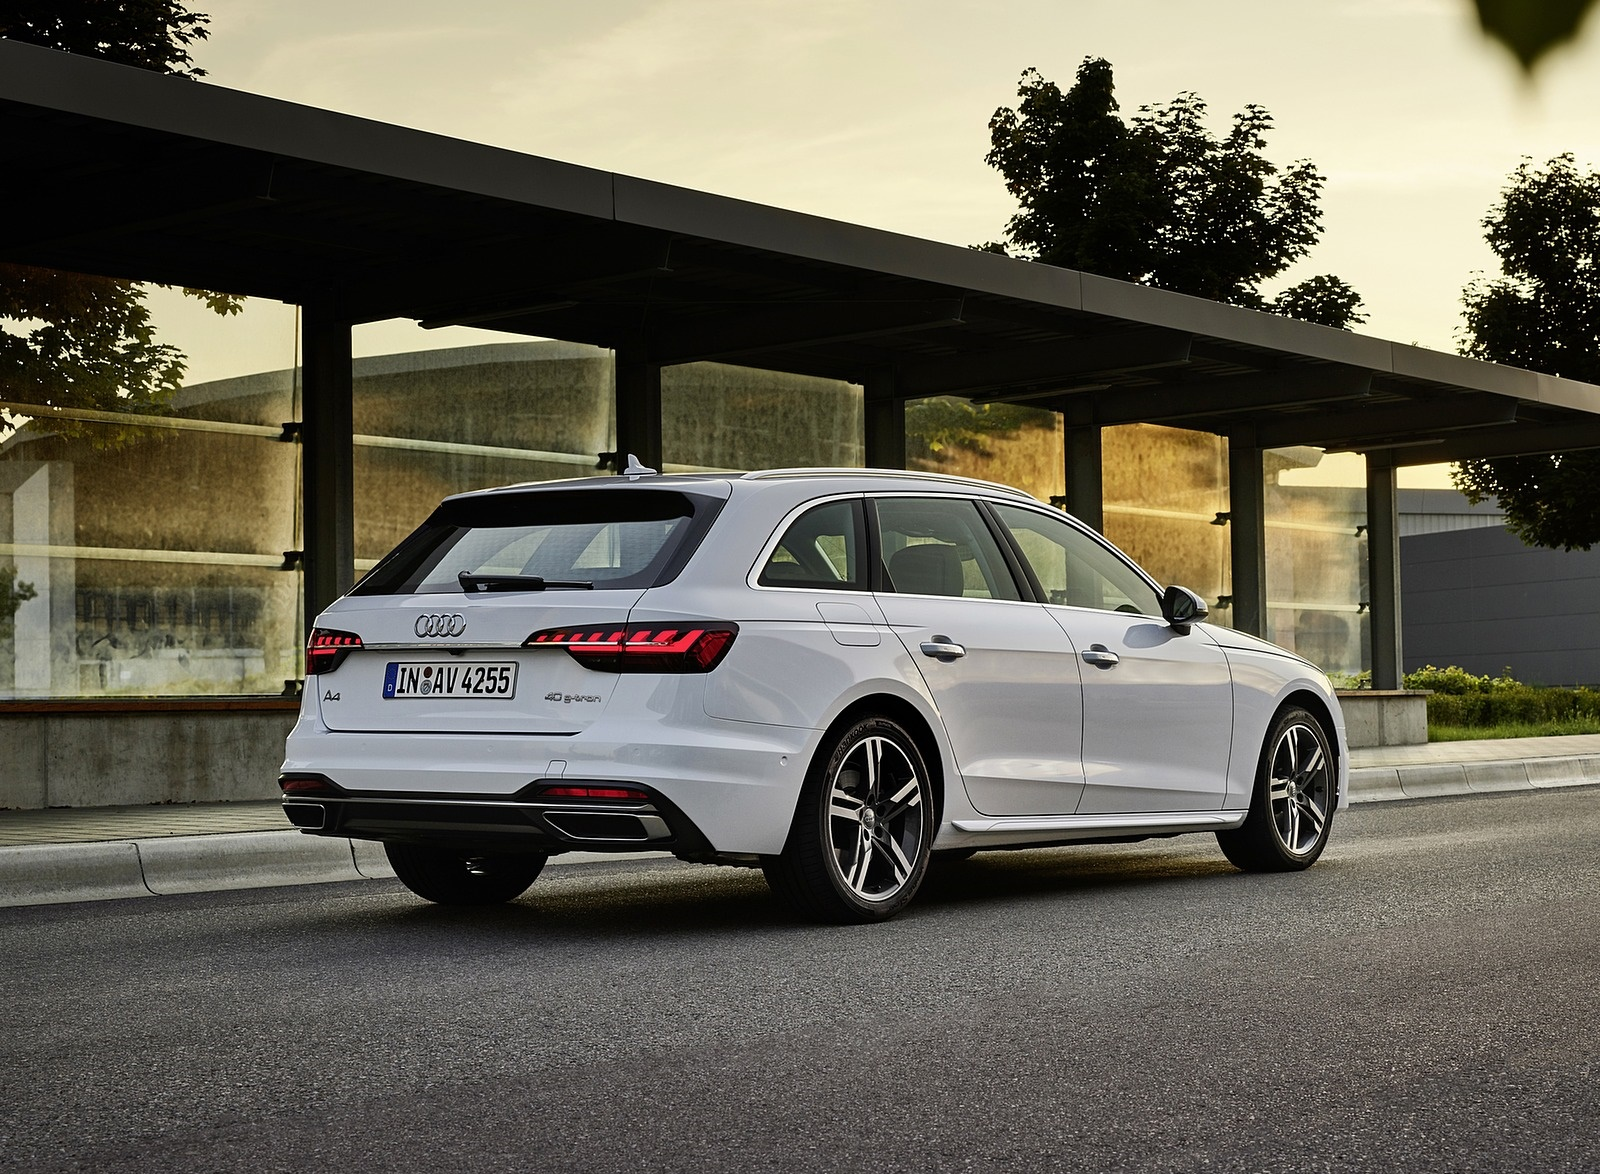 2020 Audi A4 Avant g-tron (Color: Glacier White) Rear Three-Quarter Wallpapers (8)